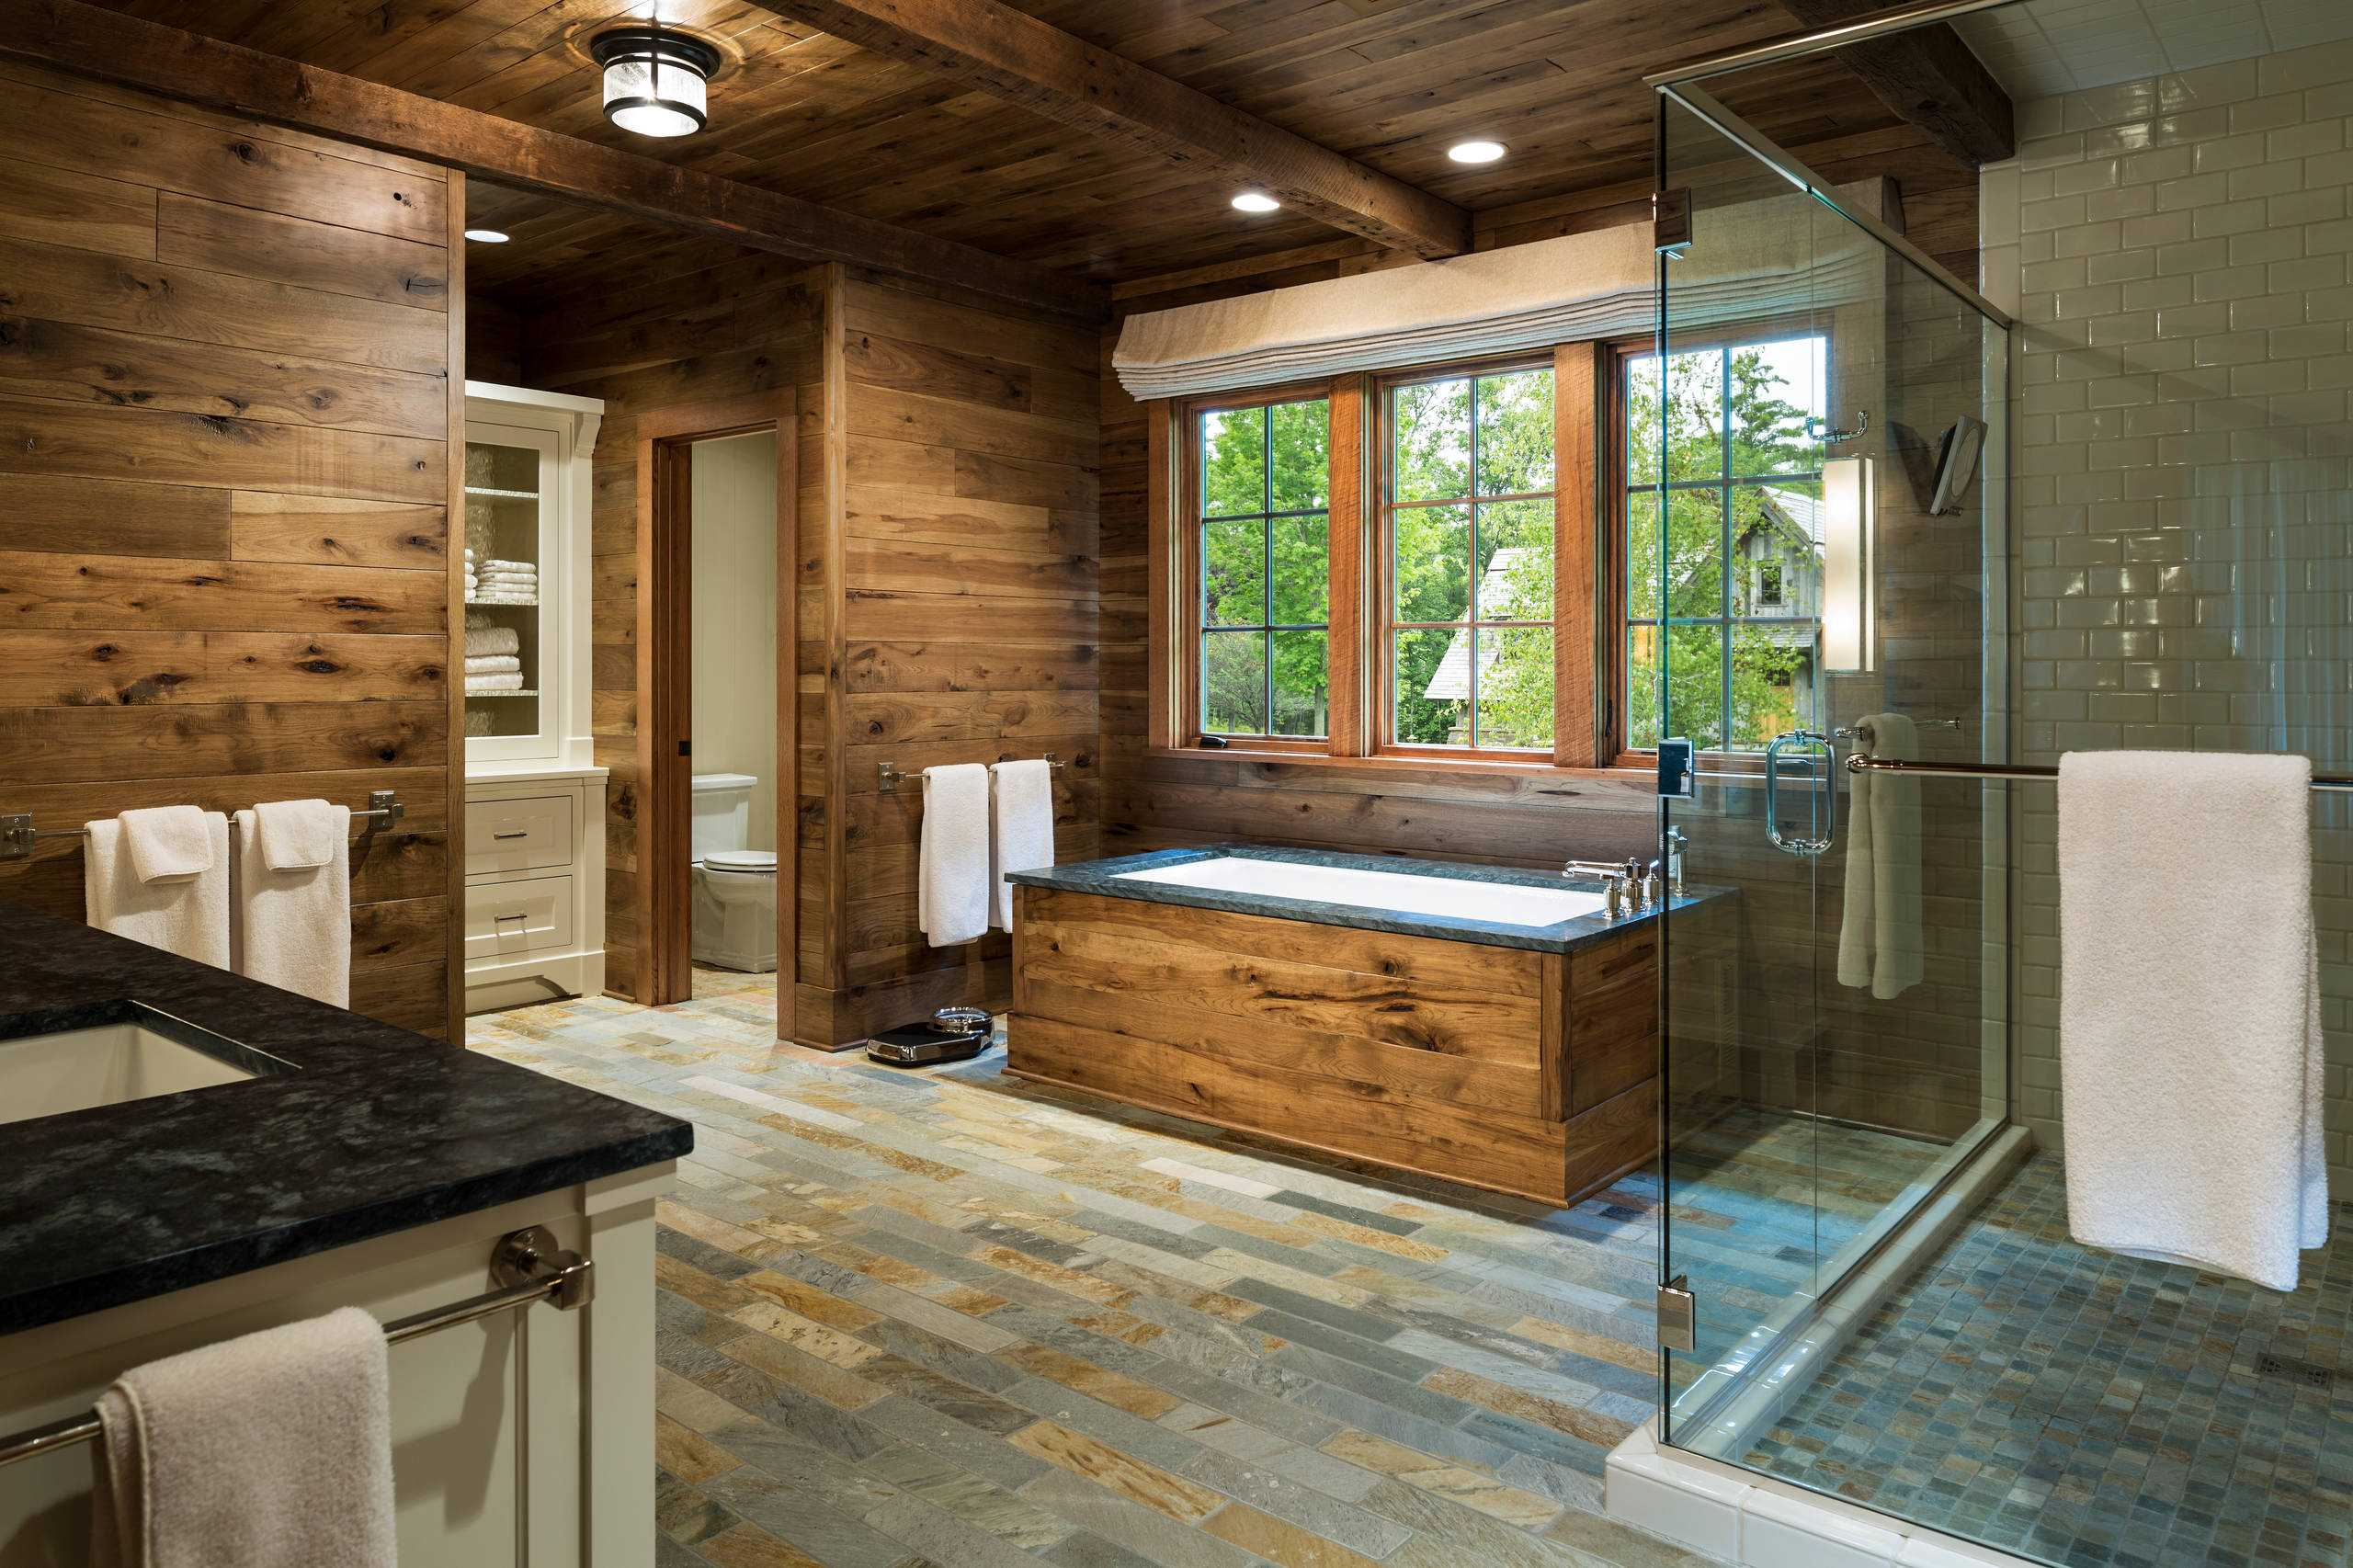 Rustic Bathroom Remodel 16 Fantastic Rustic Bathroom Designs That Will Take Your